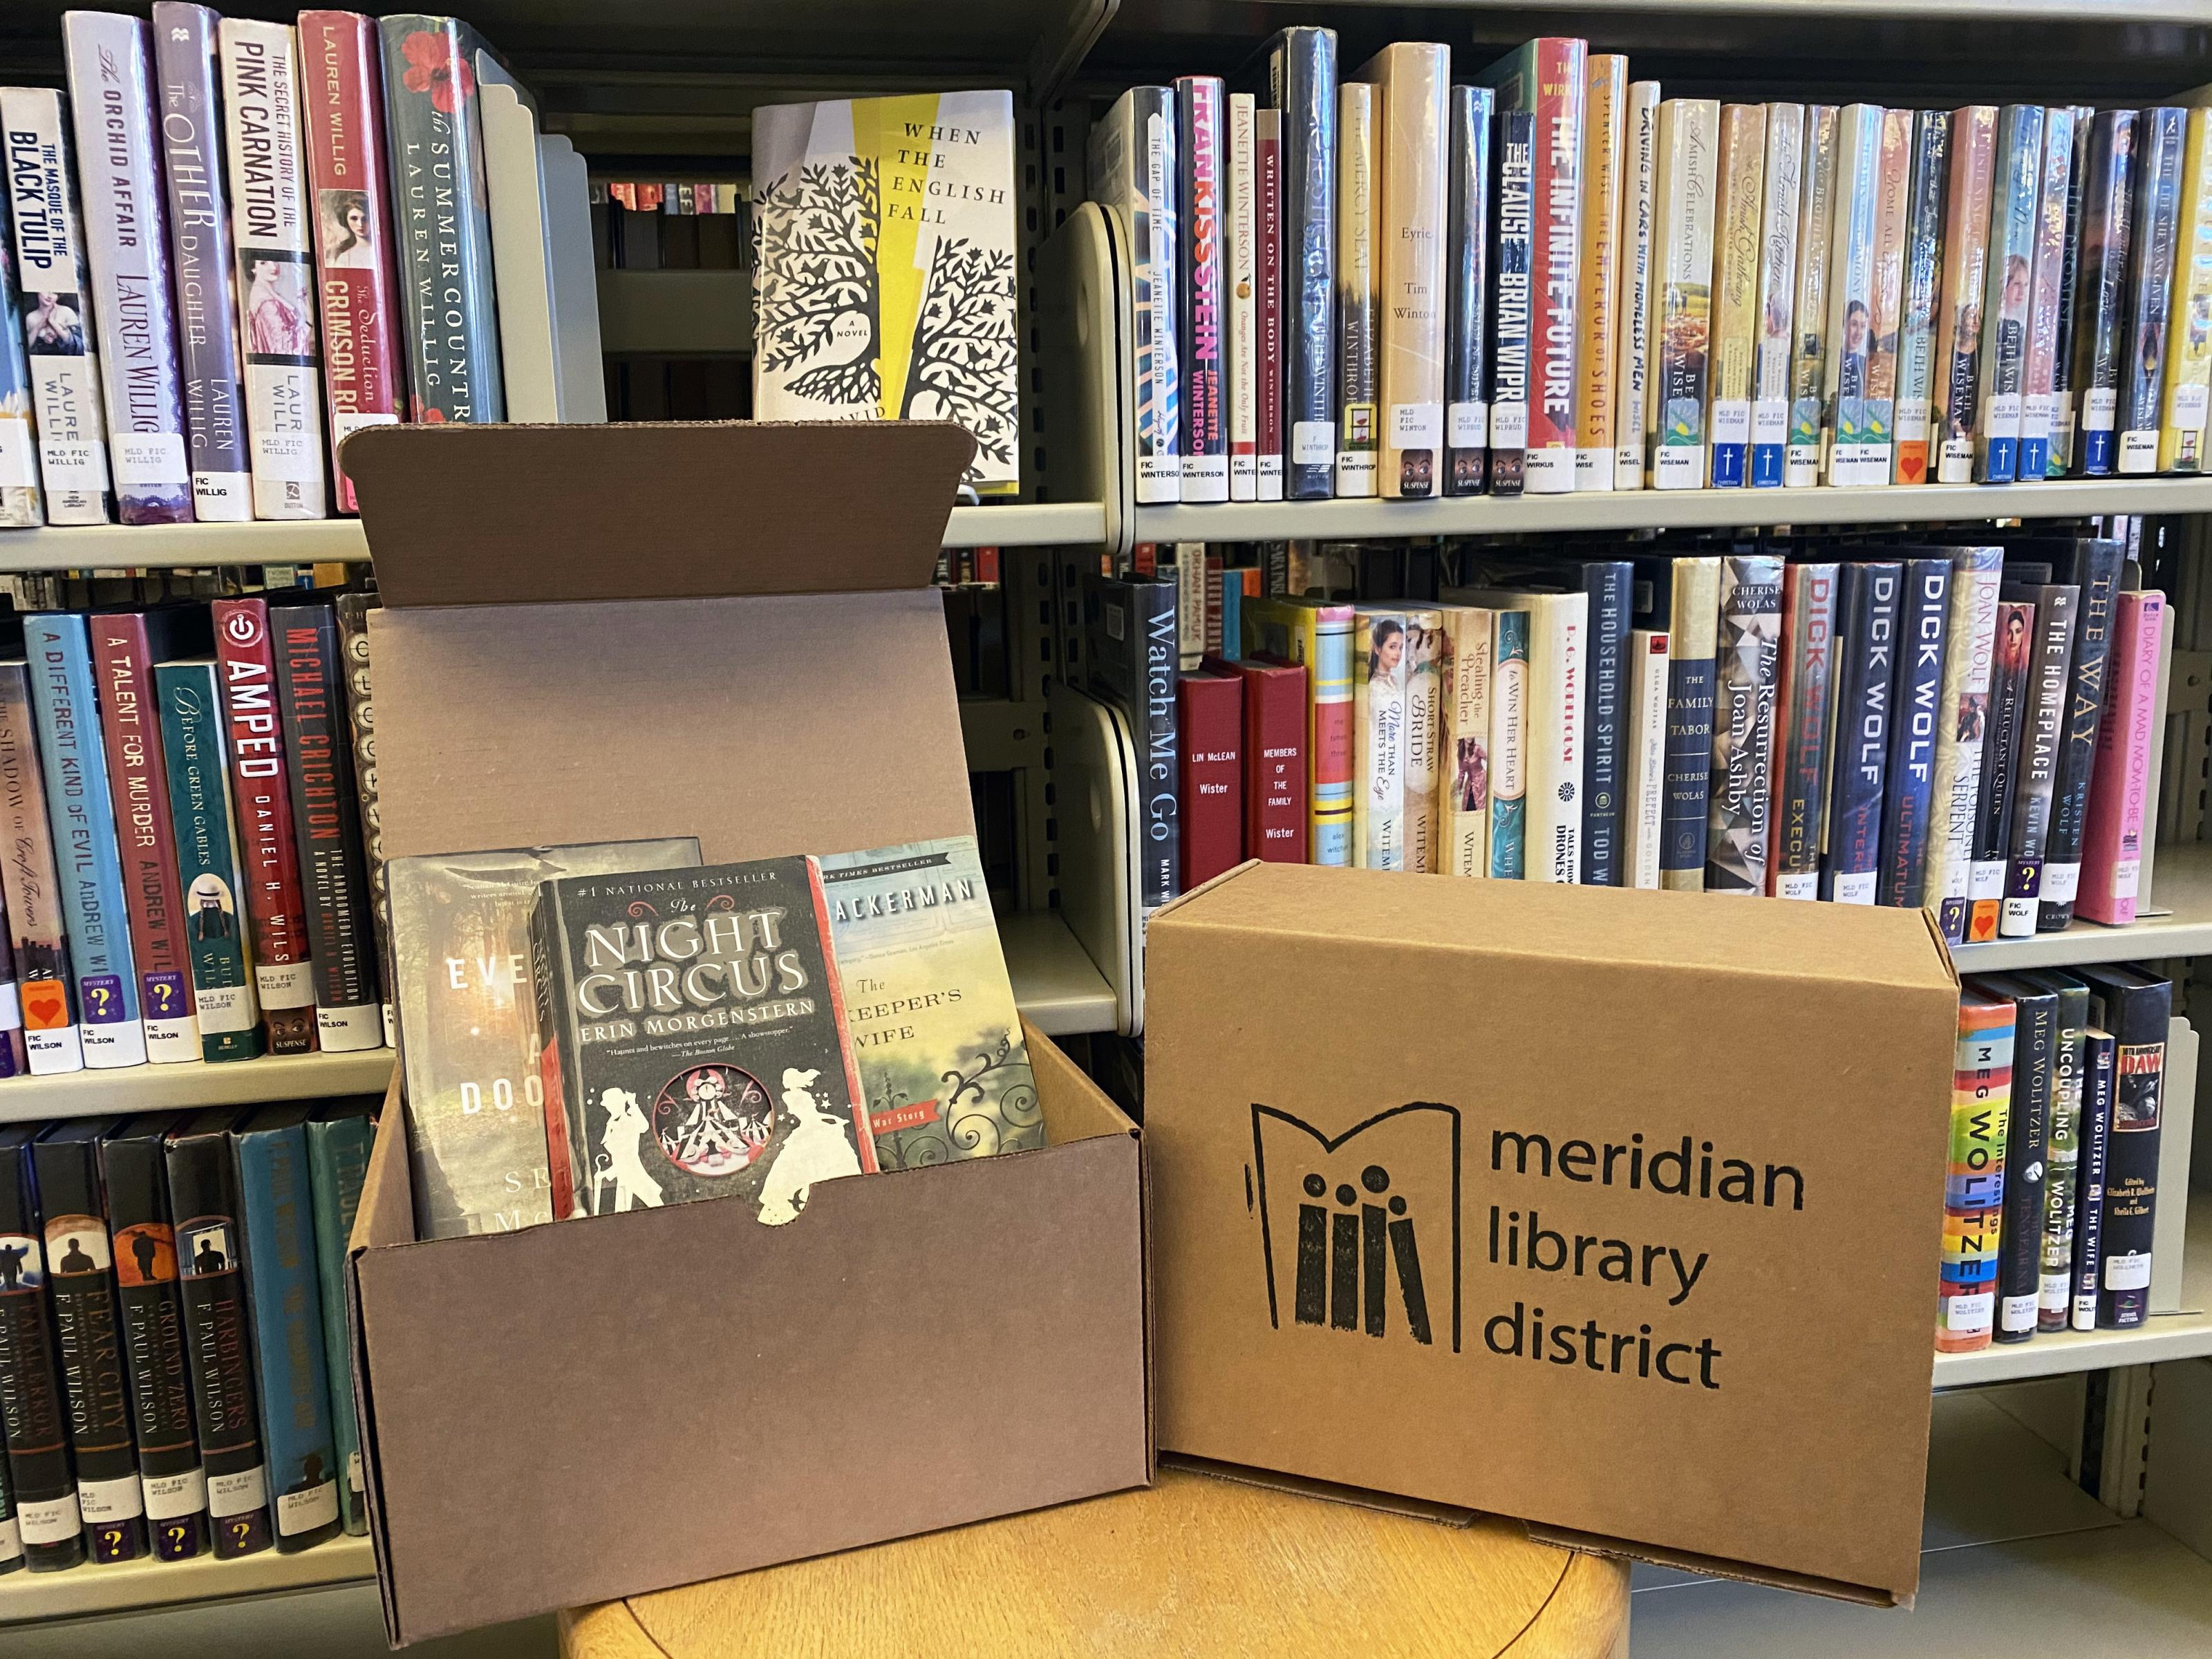 open box with a trio of books and library logo